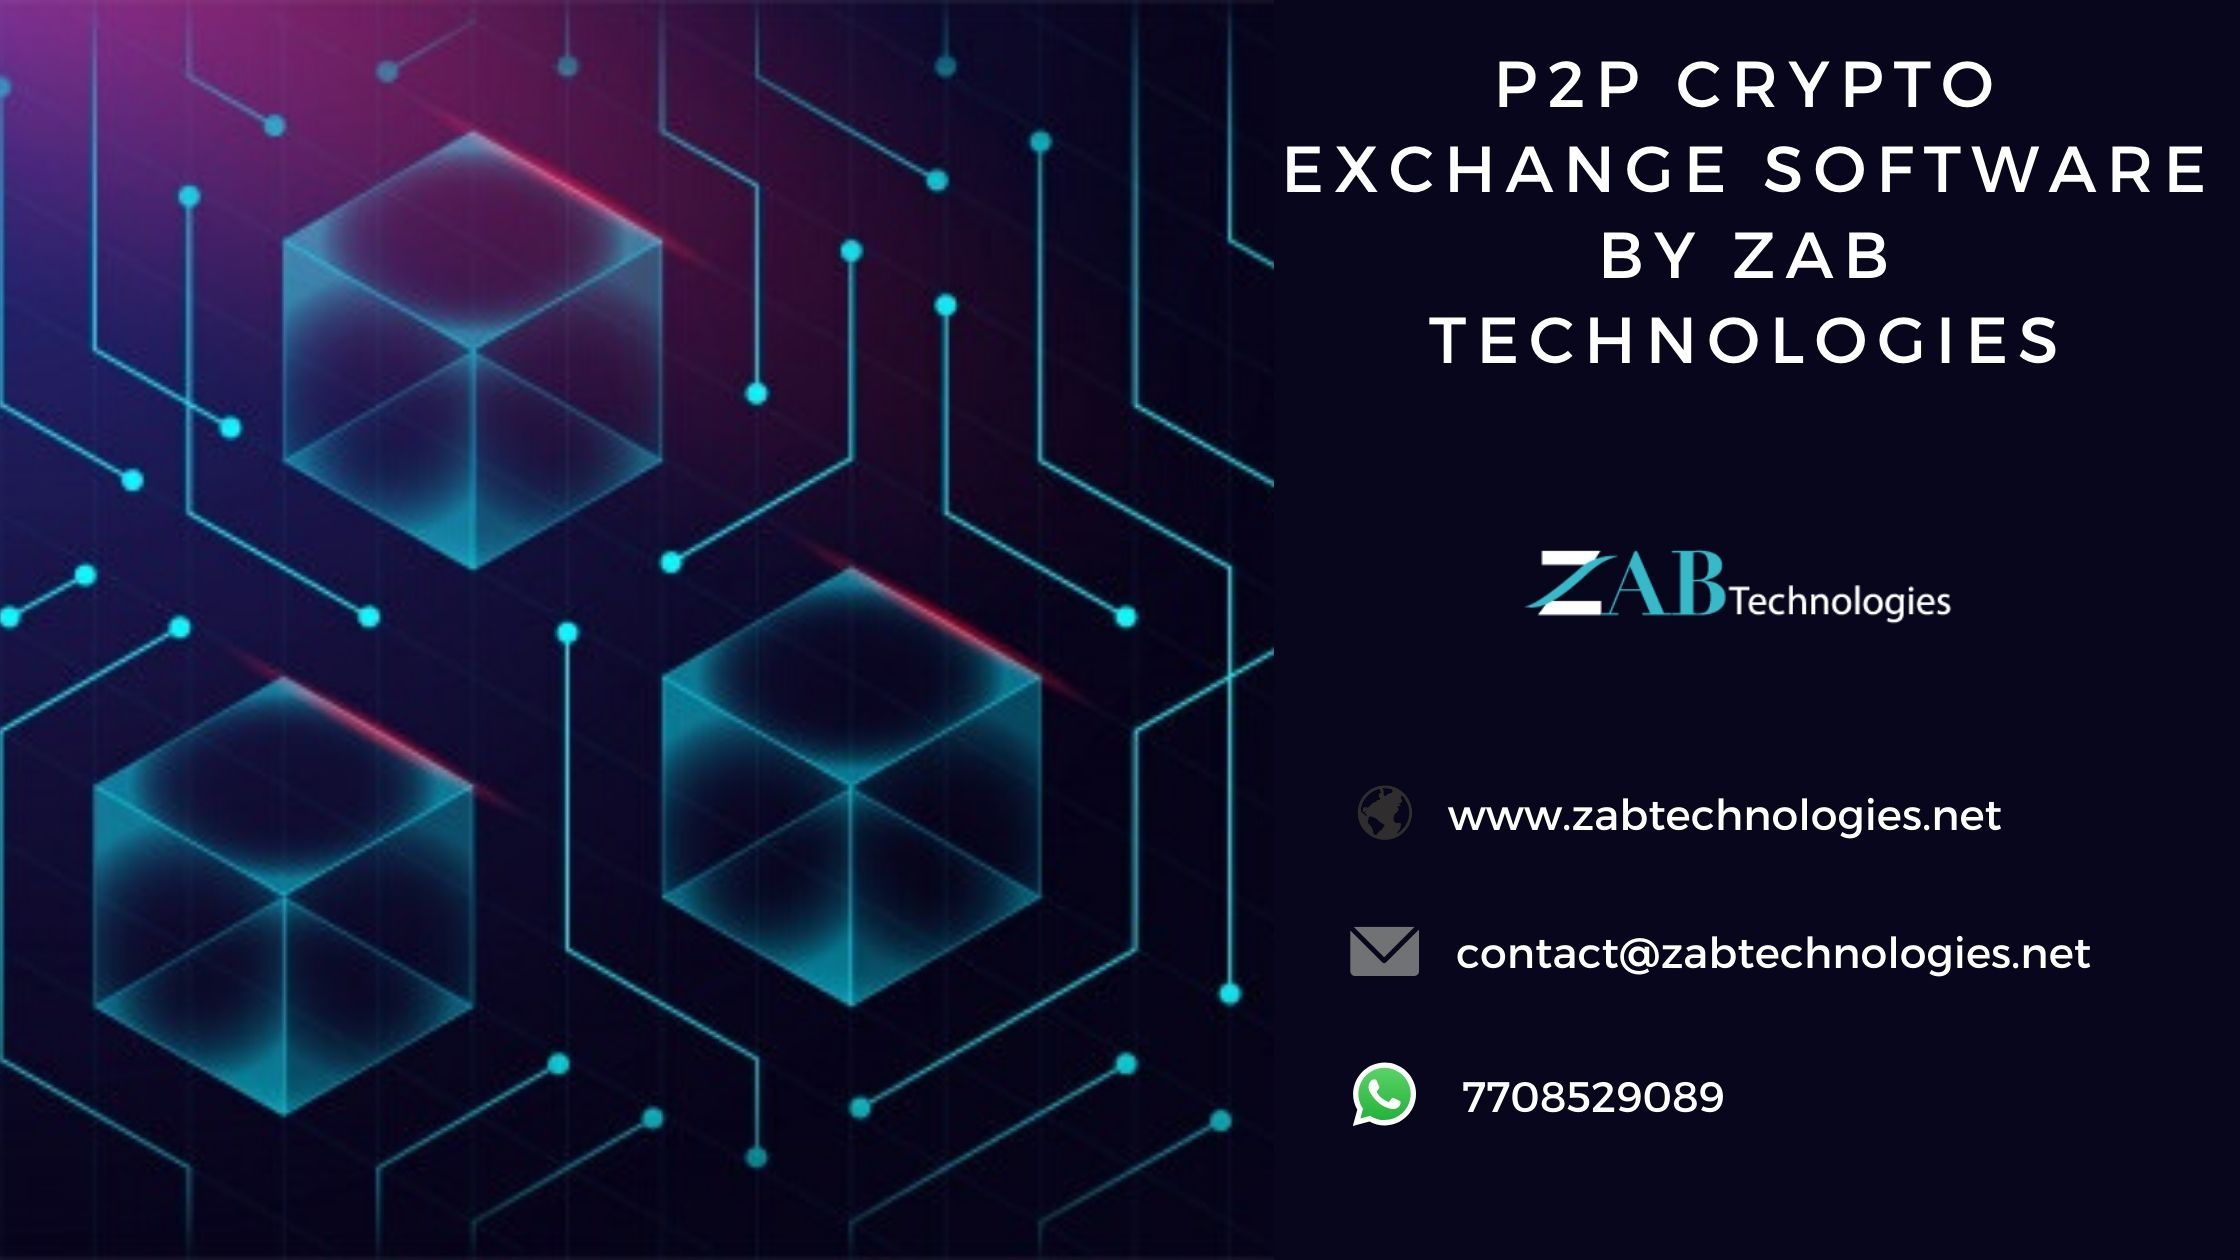 Zab Technologies presents the Brand new p2p crypto exchange software with reliable security features